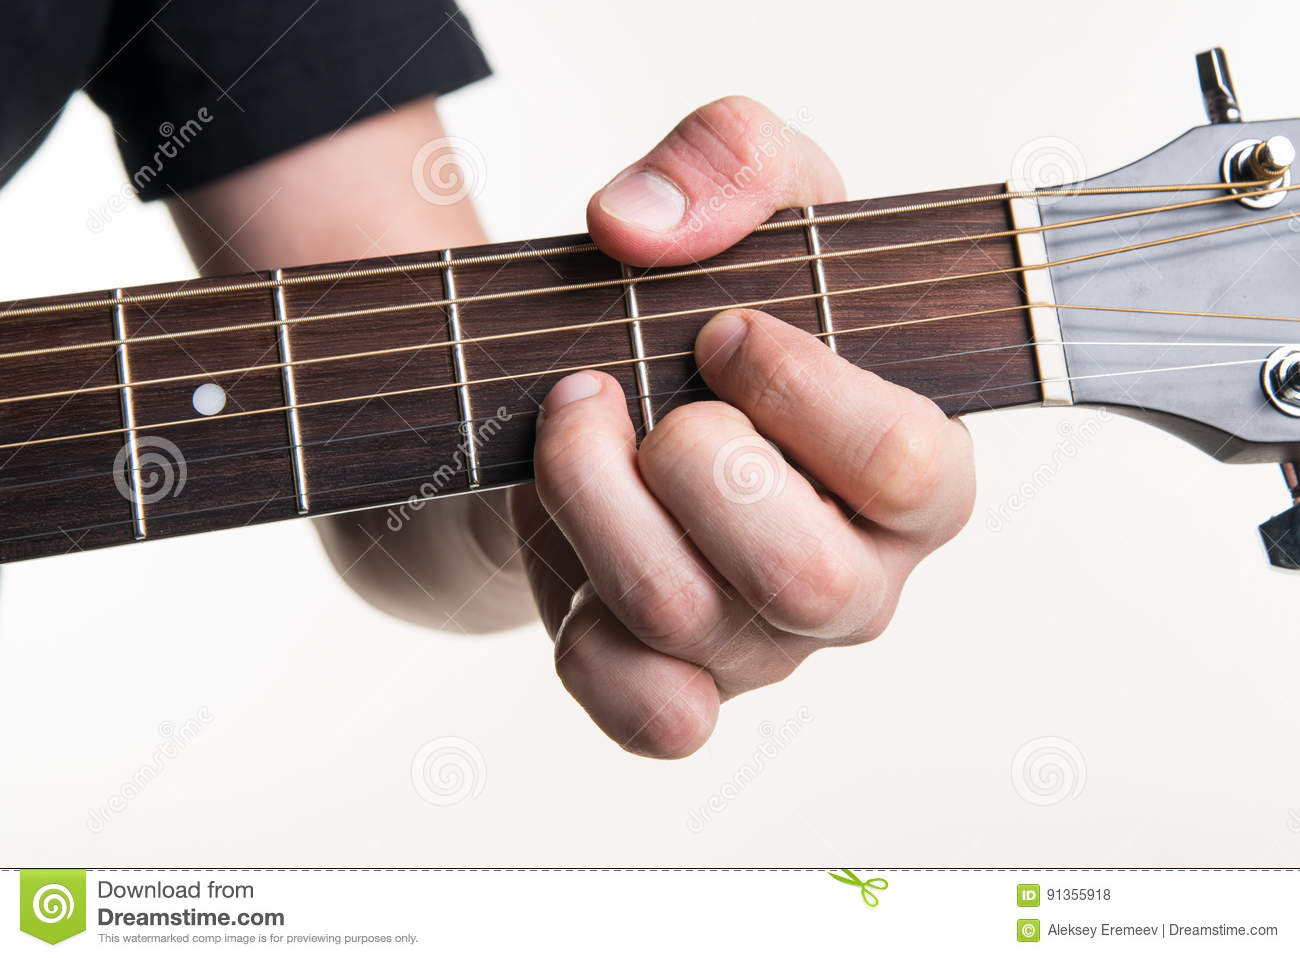 The Guitarists Hand Clamps The Chord D On The Guitar On A White